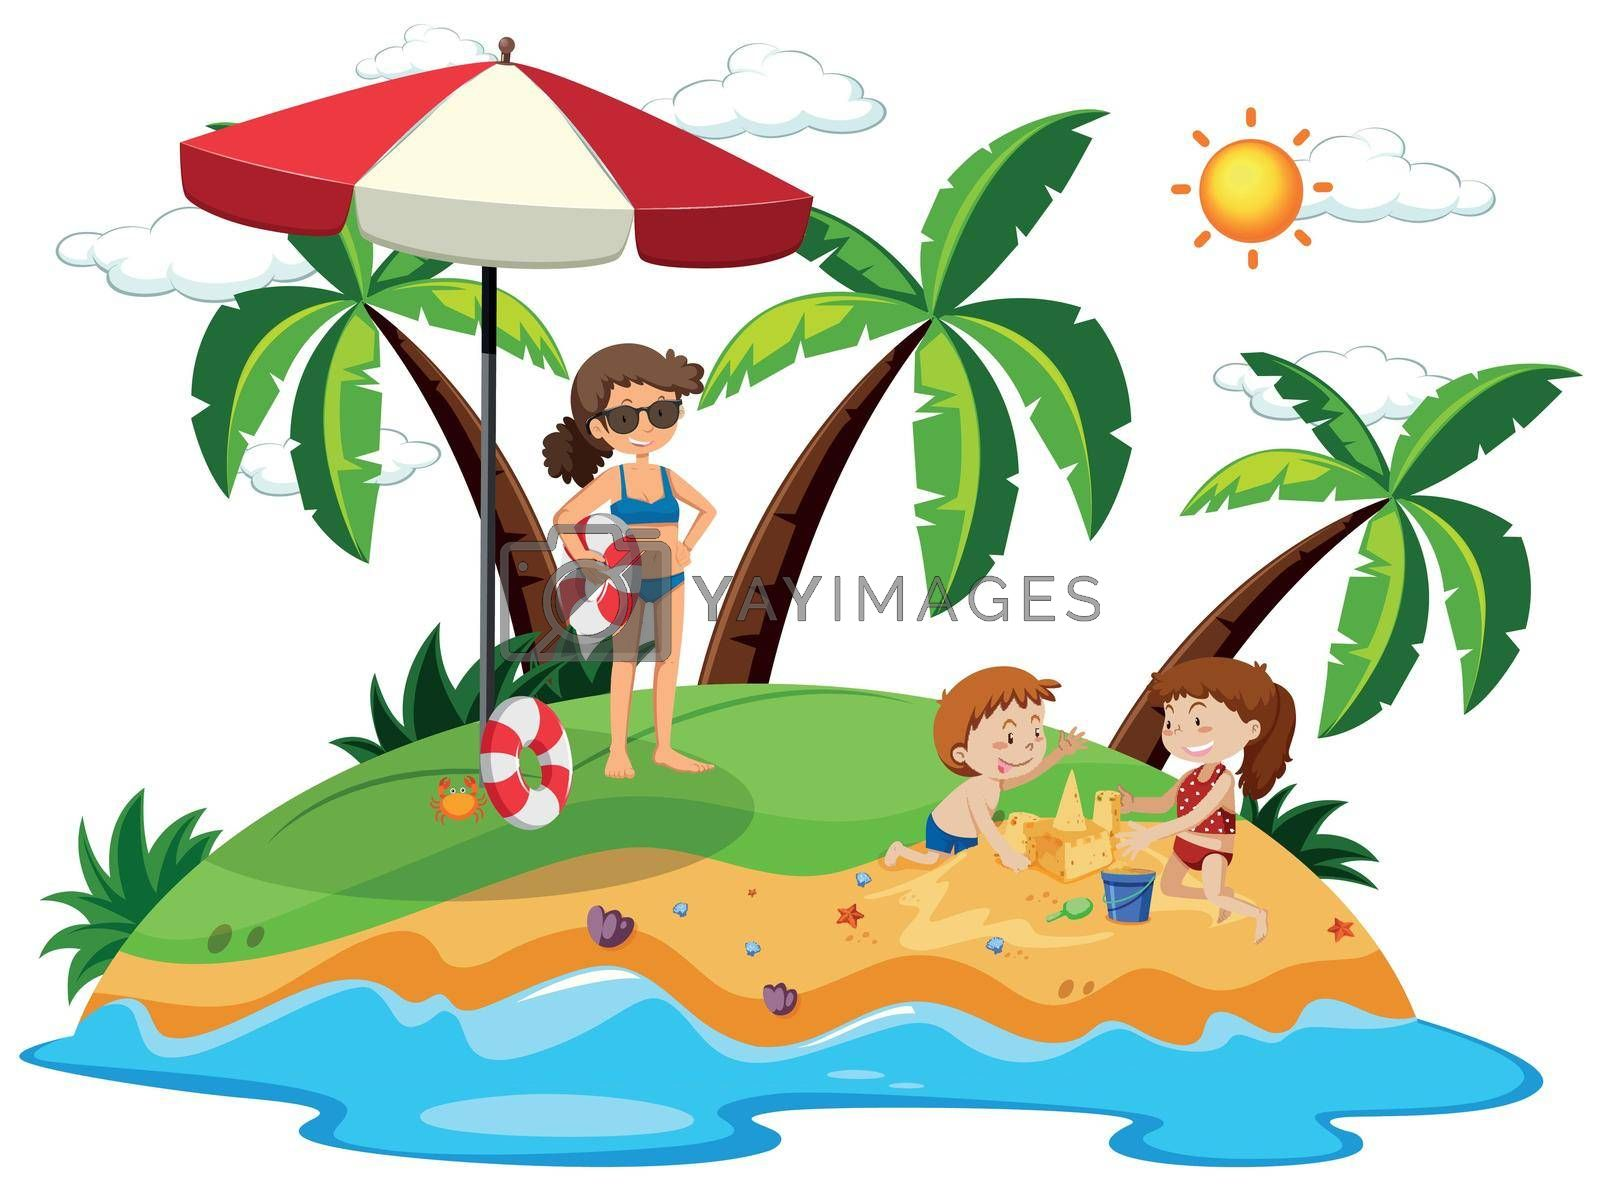 Royalty free image of People on an island by iimages